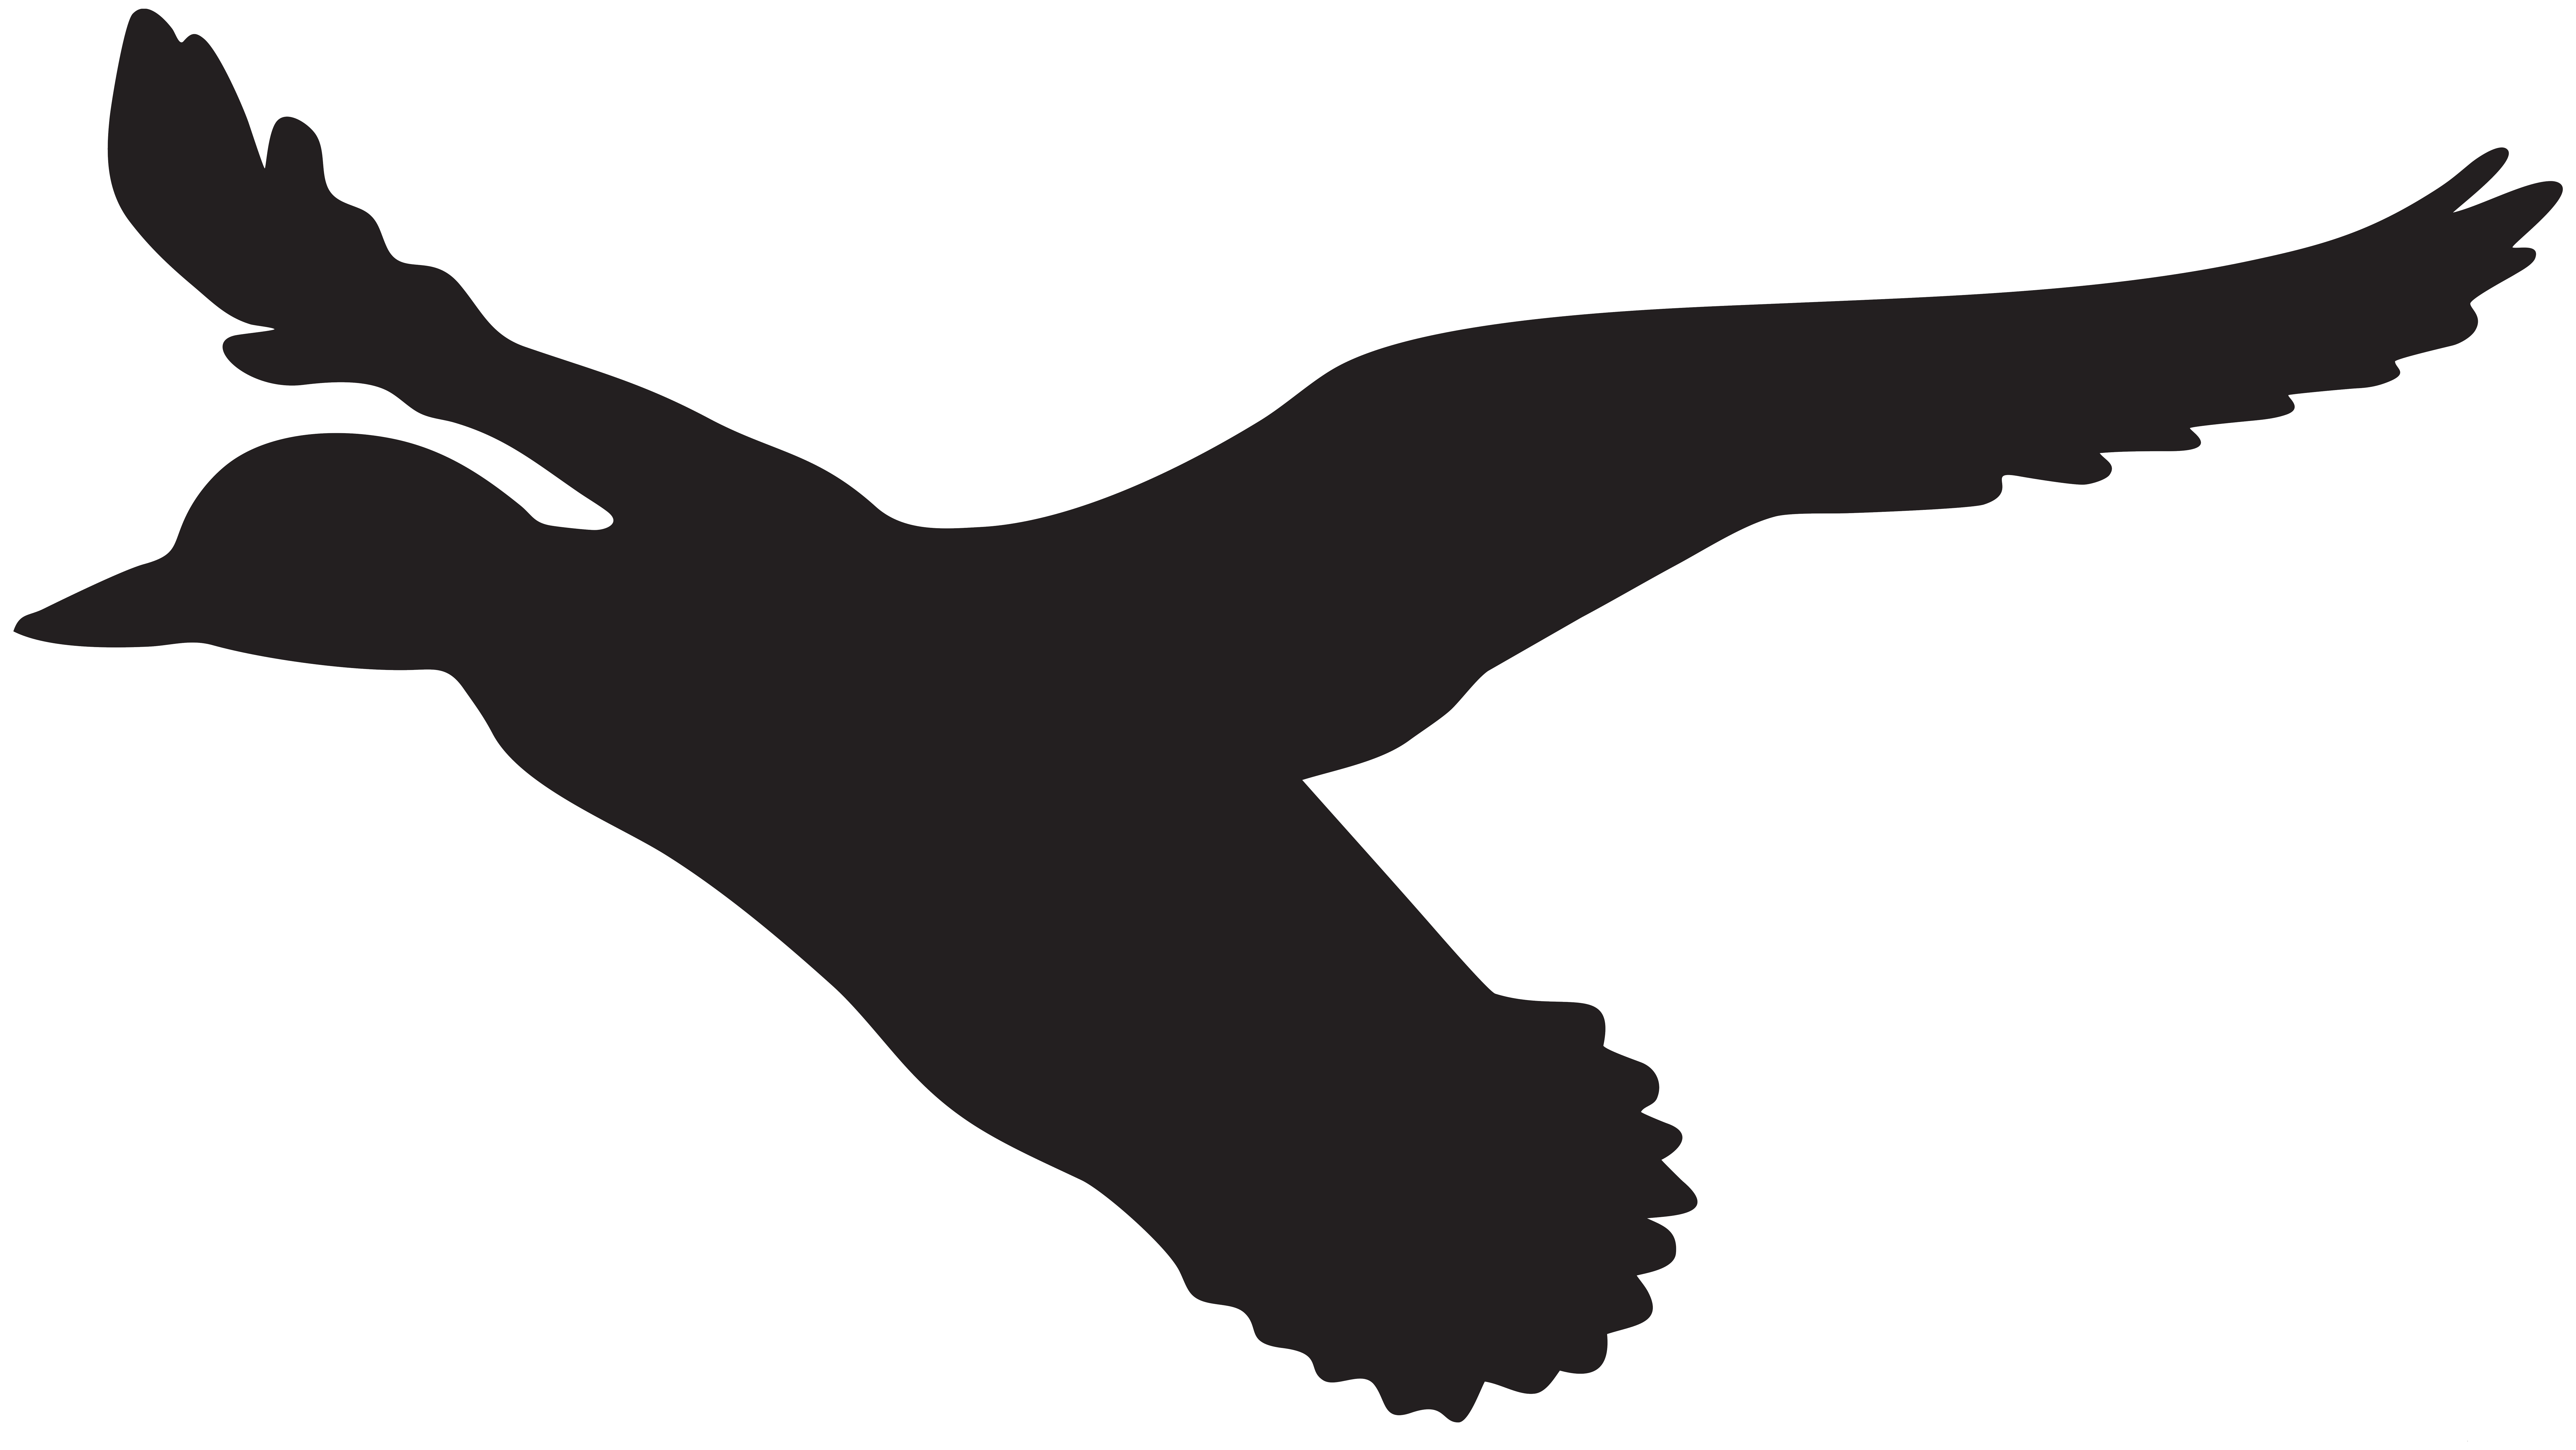 Ducks clipart flying. Duck silhouette png clip